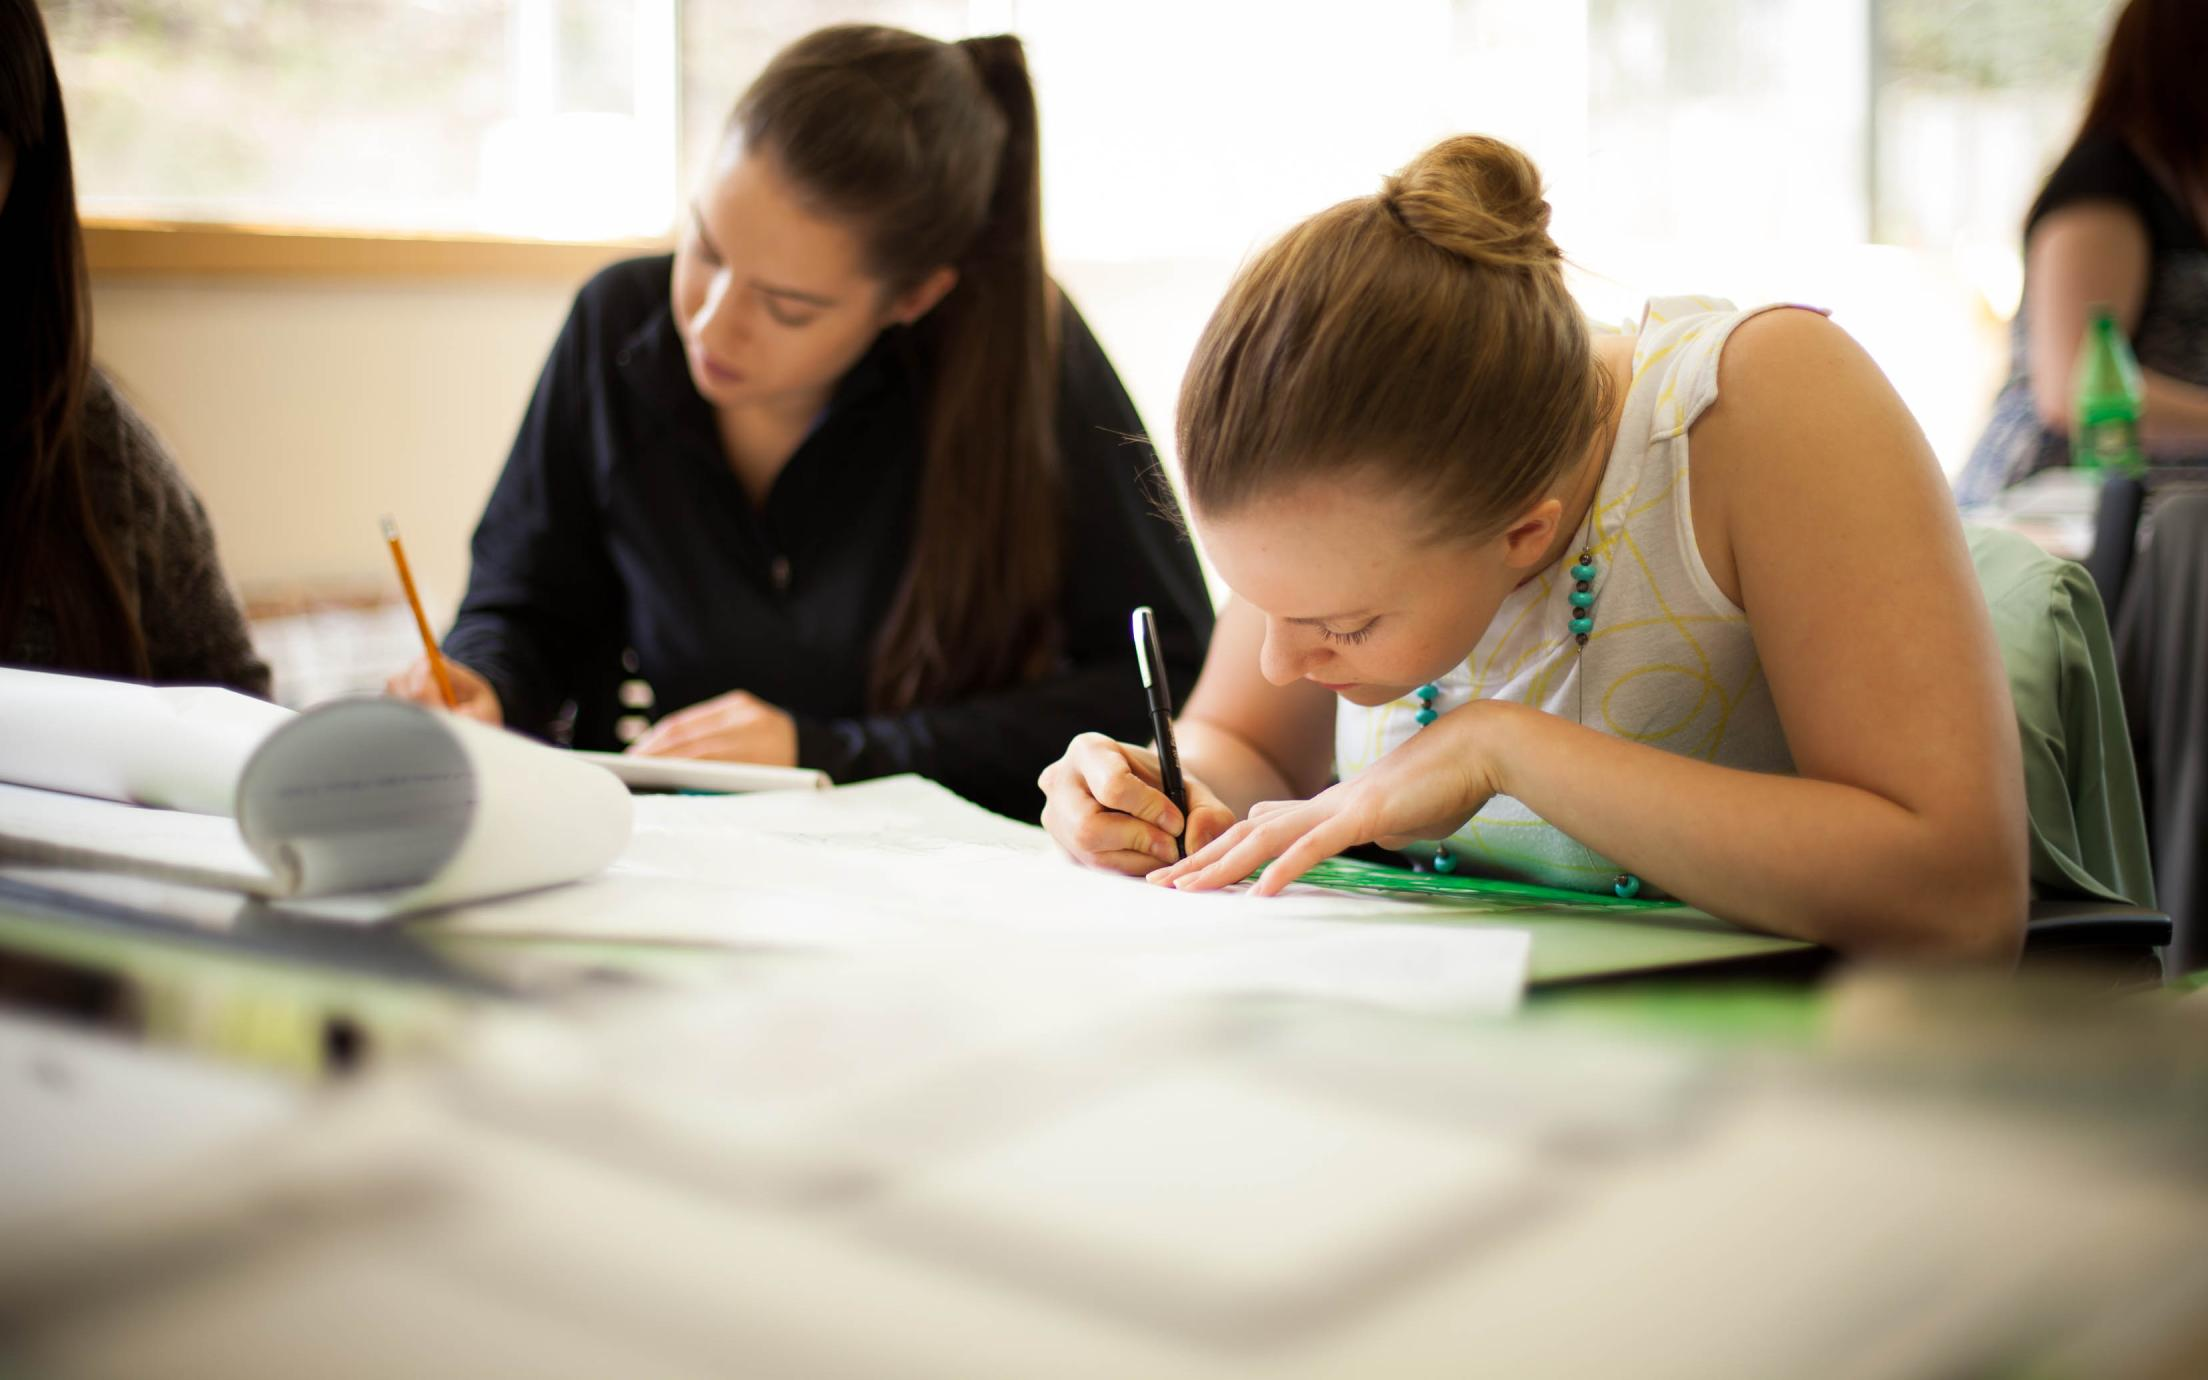 A group of students of the Bachelor Degree, Psychology Honours studying in the classroom